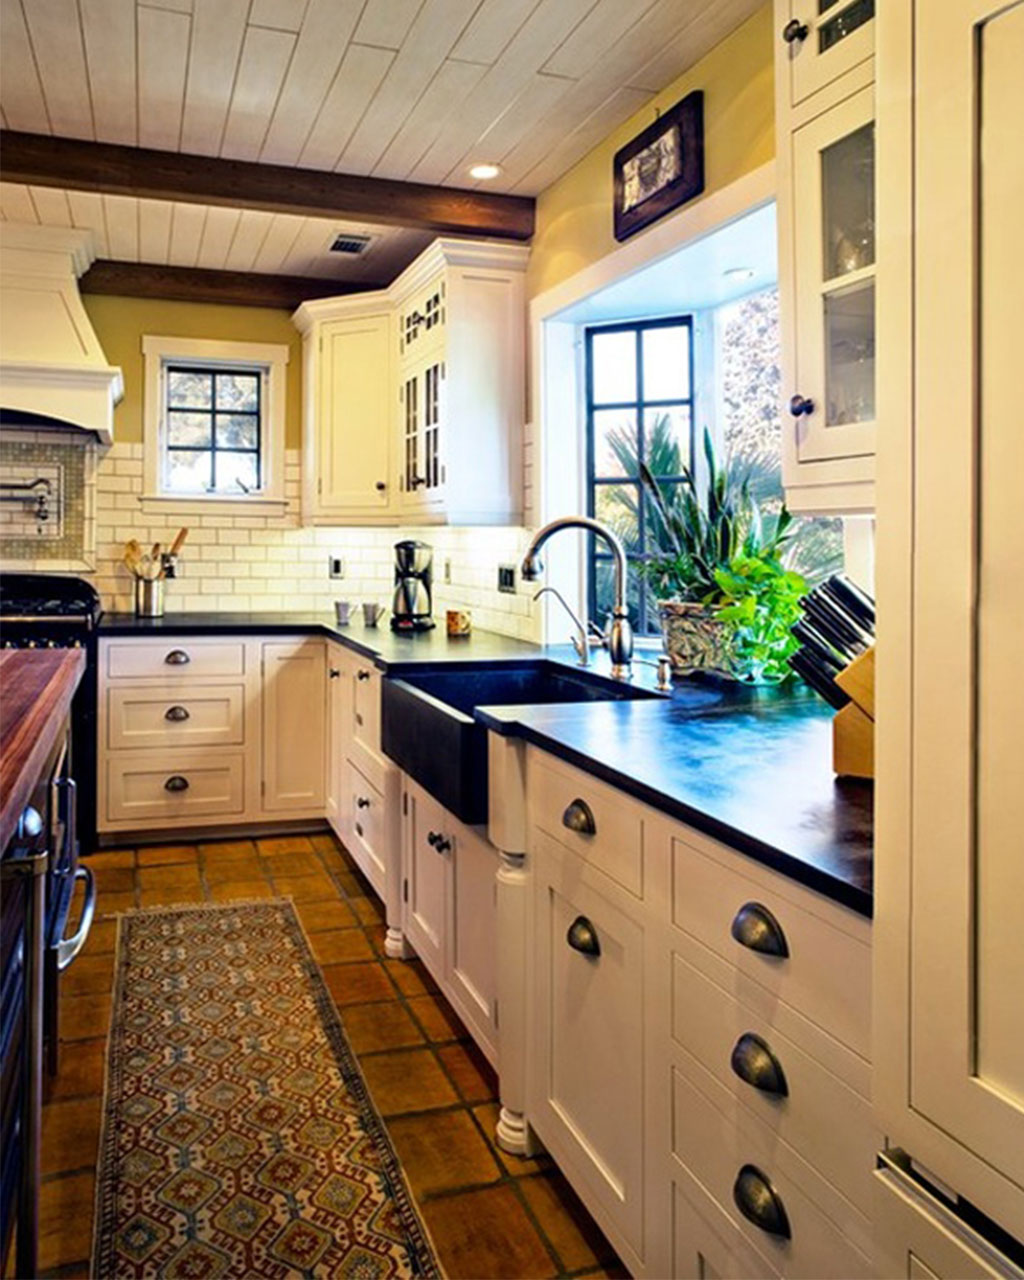 Kitchen trends 2015 loretta j willis designer Modern kitchen design trends 2014